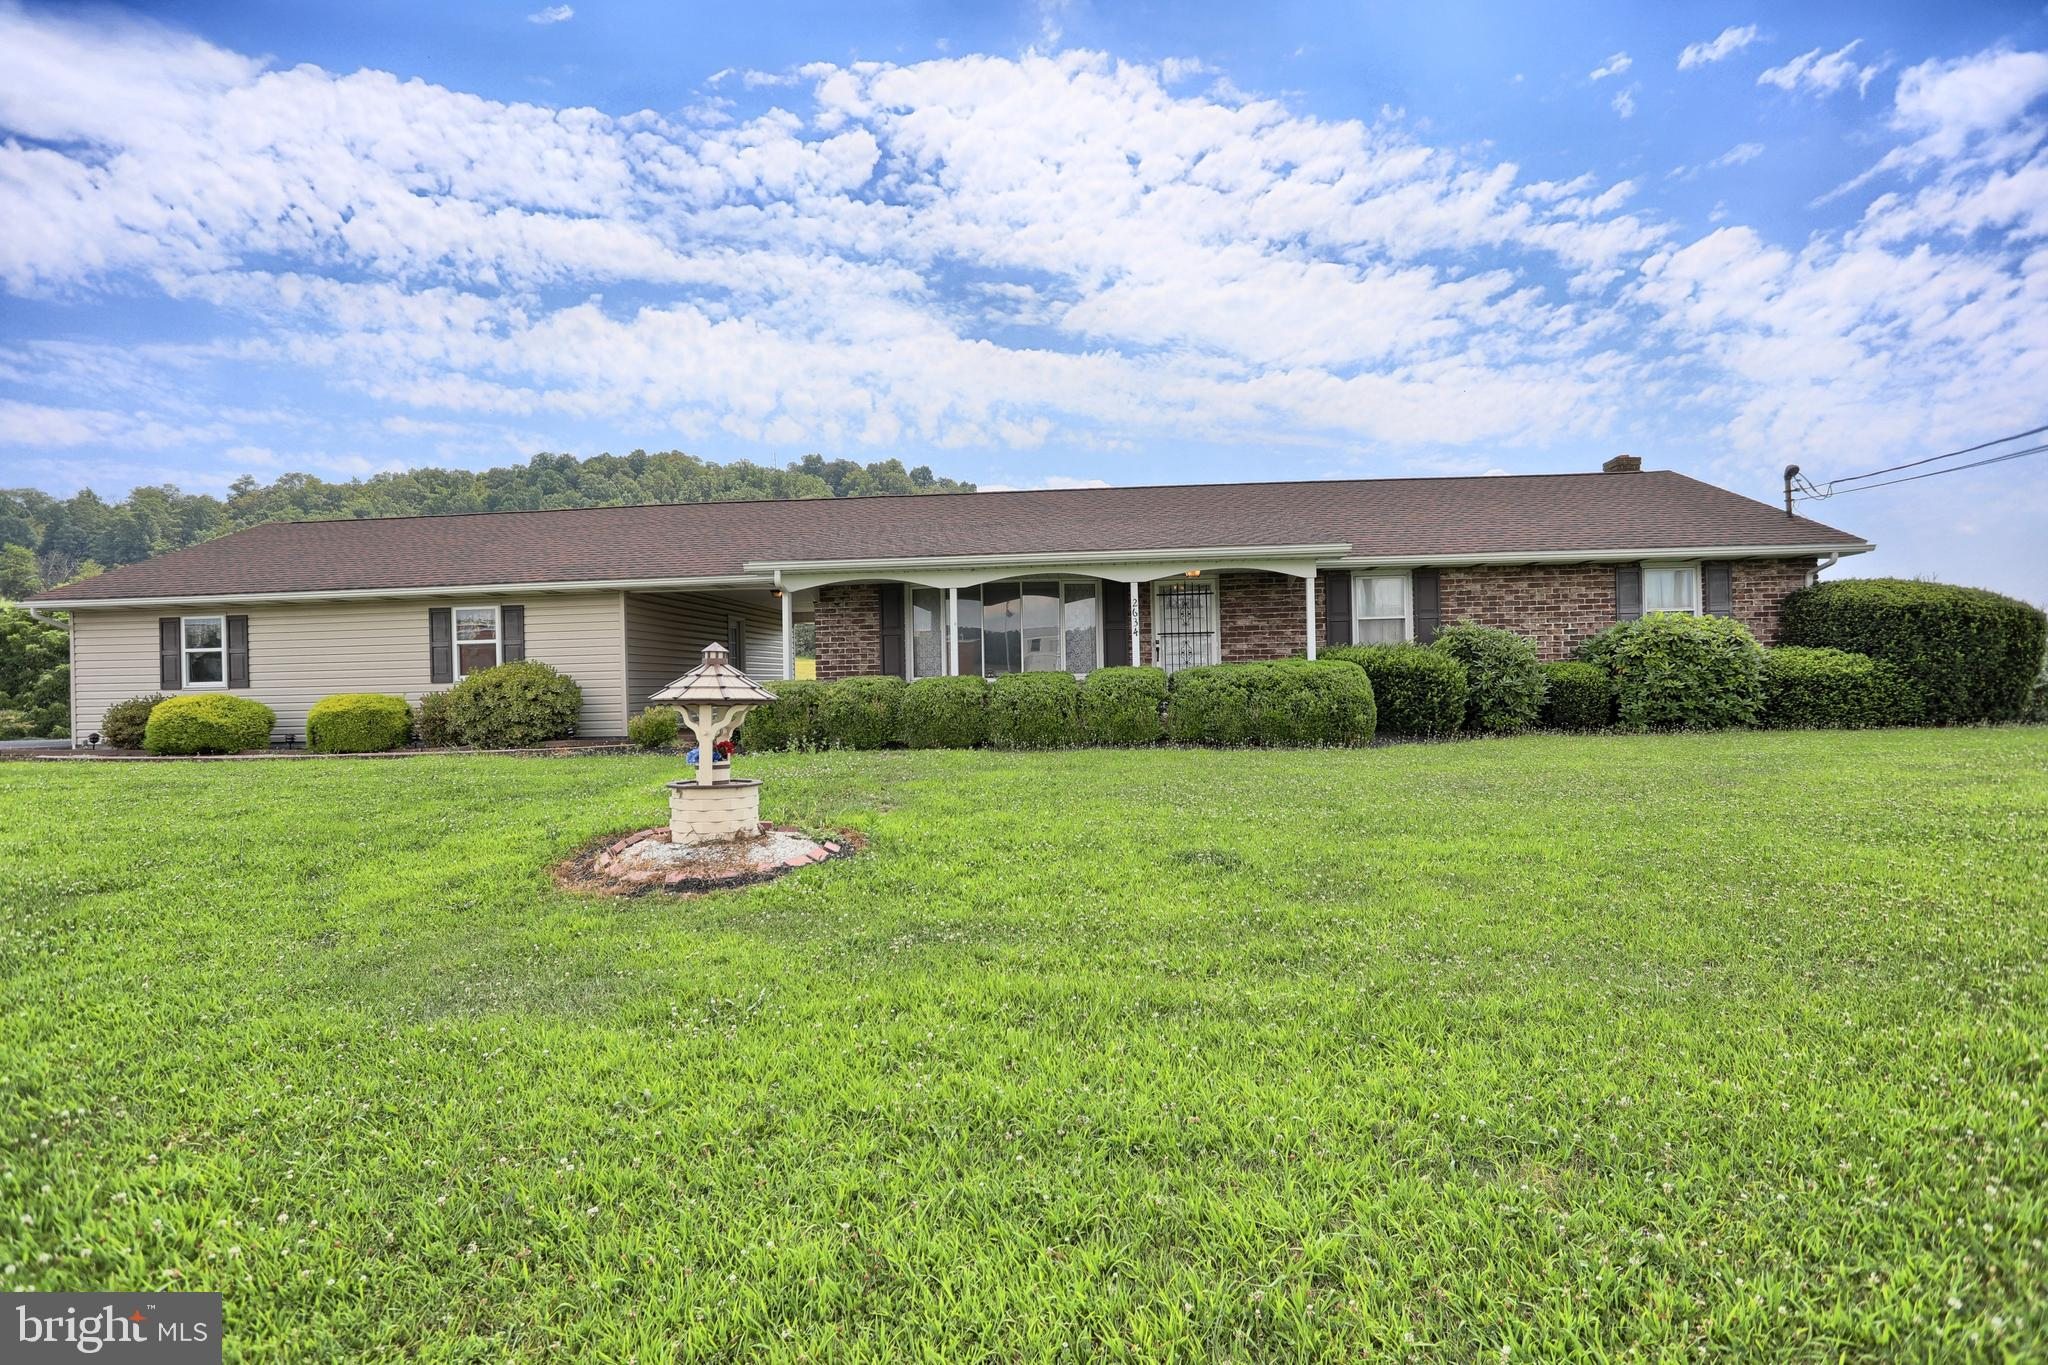 2634 SHERMANS VALLEY ROAD, ELLIOTTSBURG, PA 17024